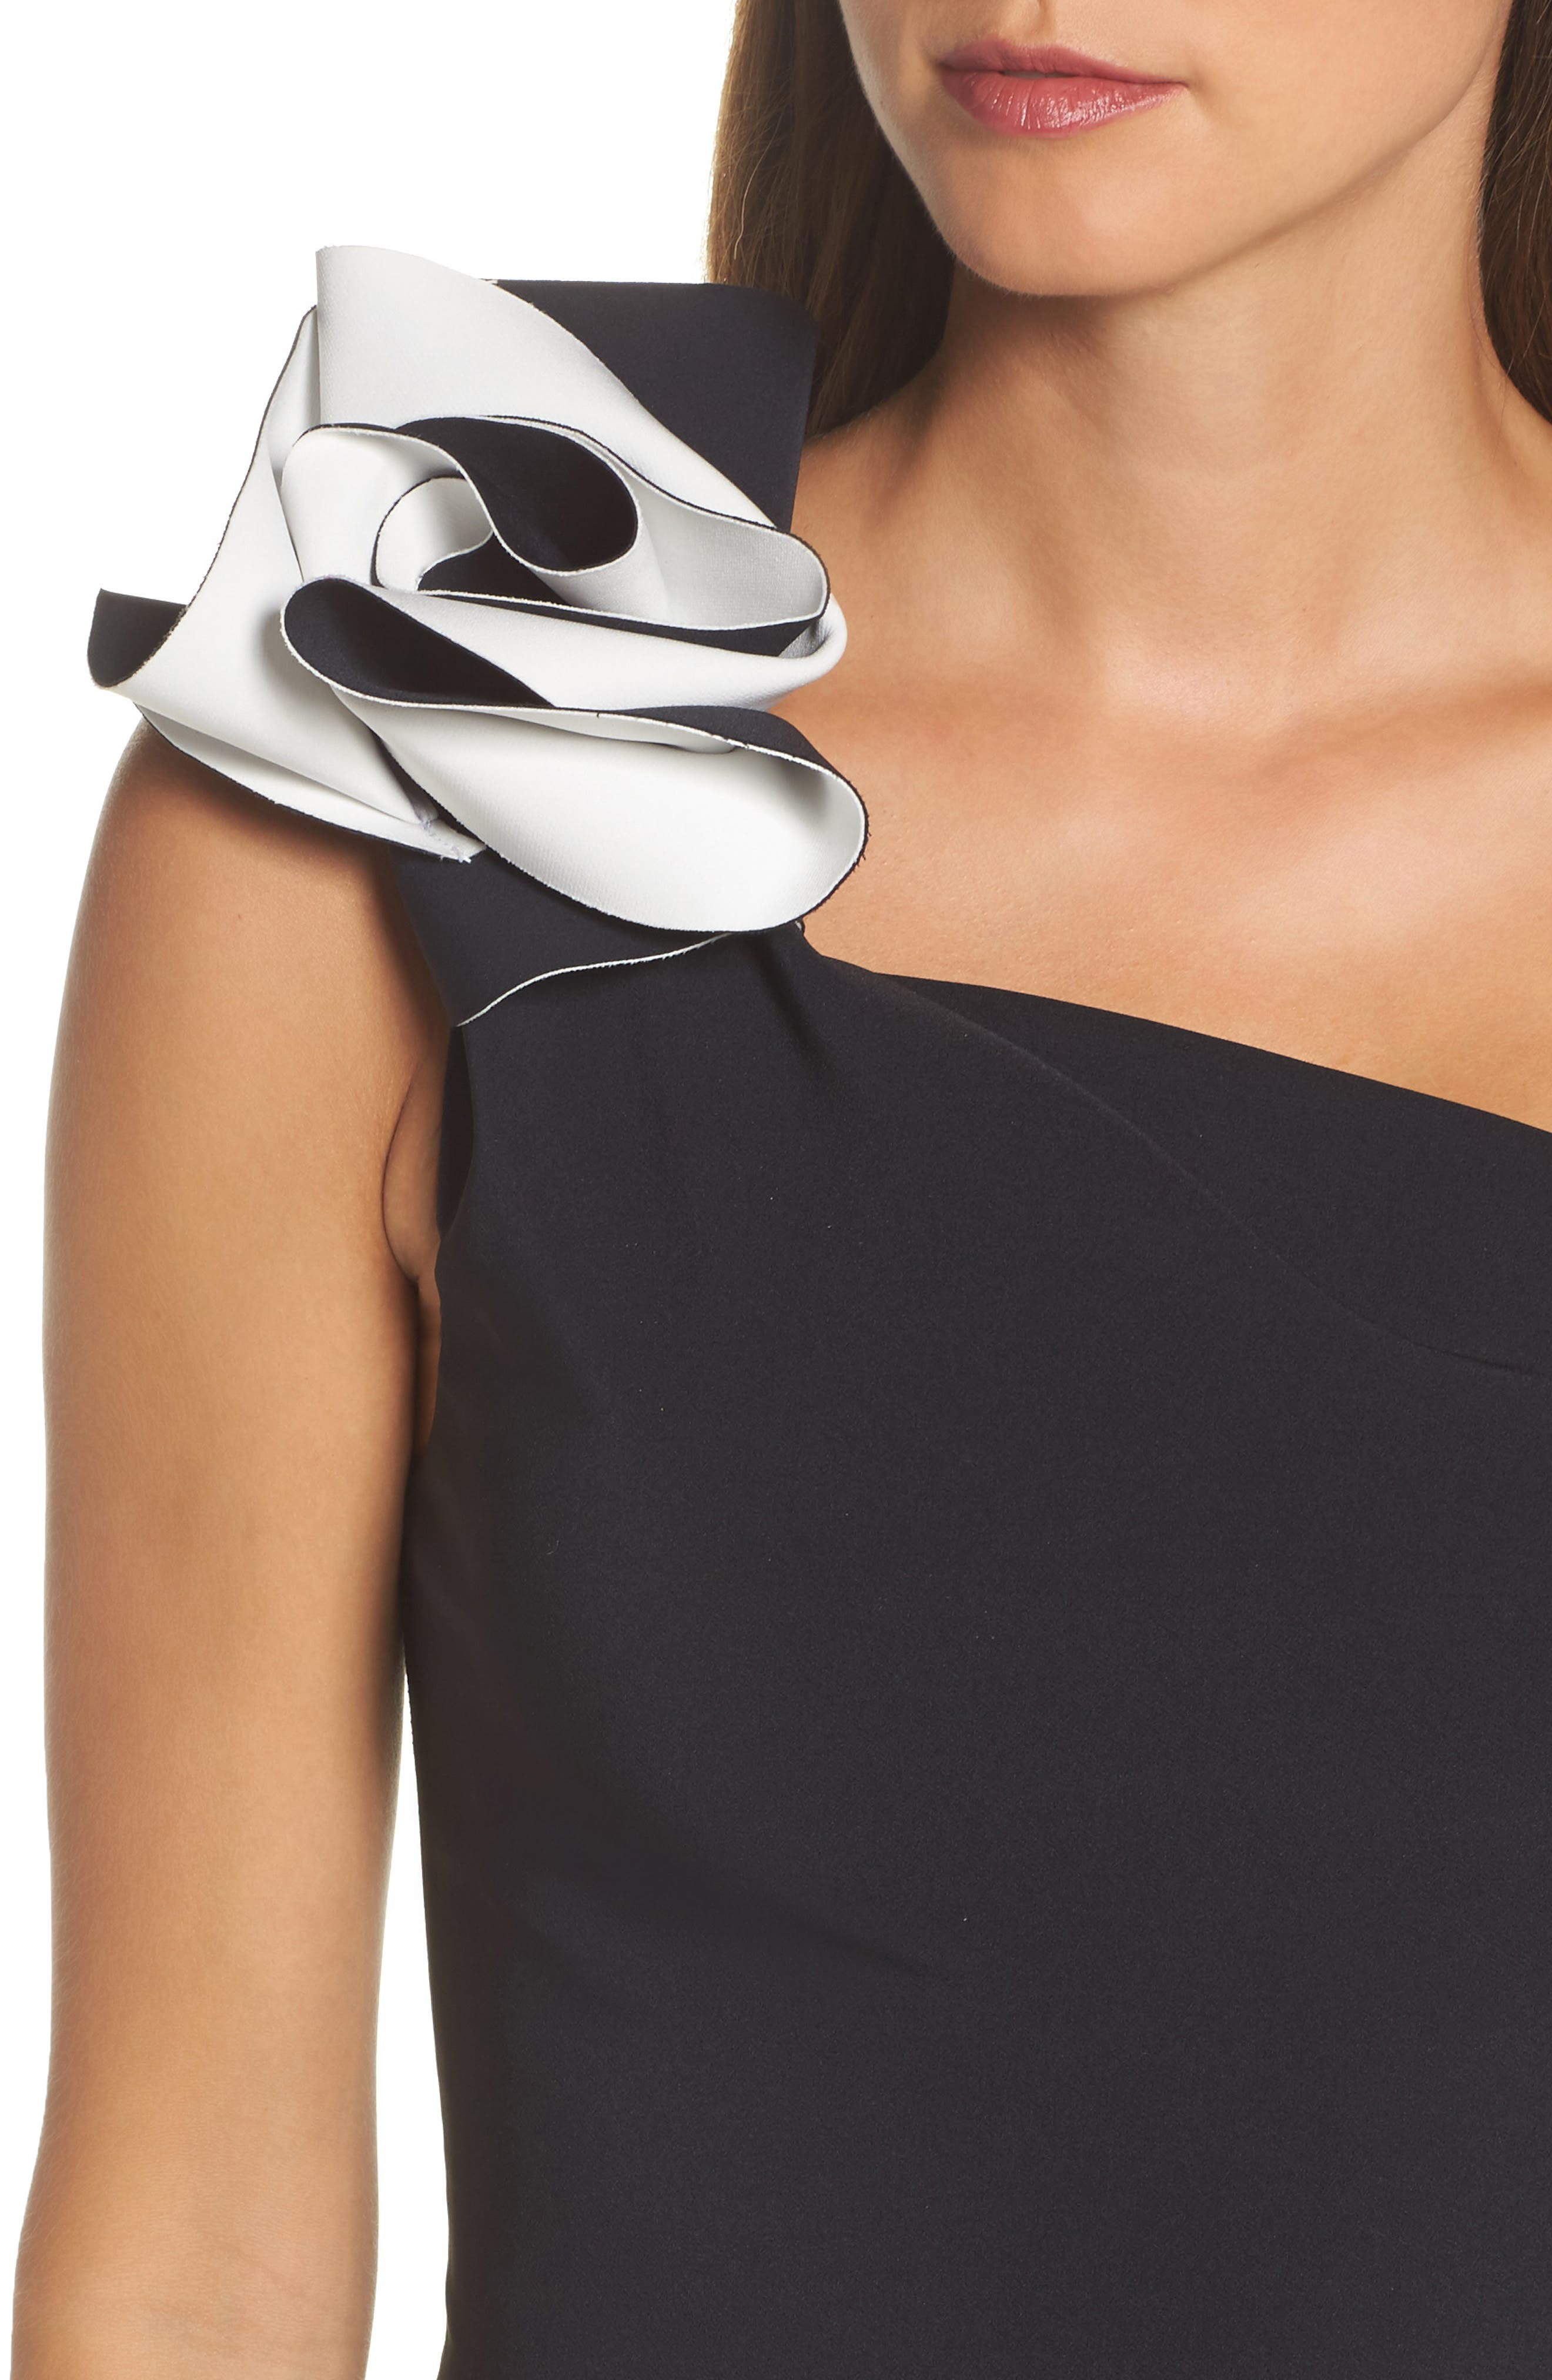 Sydney Ruffle One-Shoulder Gown,                             Alternate thumbnail 4, color,                             Black/ Ivory